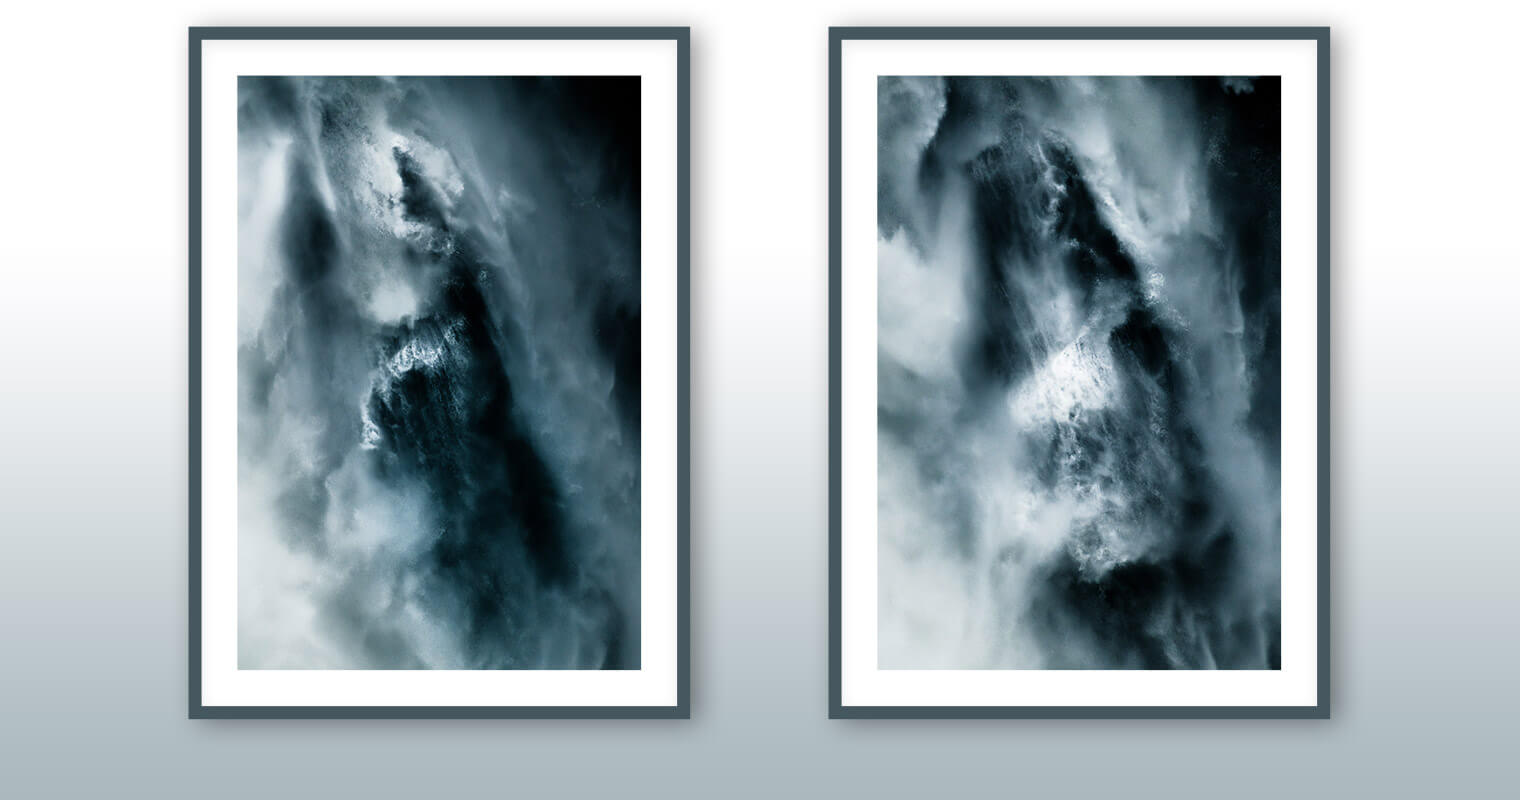 Abstract Fine Art Prints of Waterfall